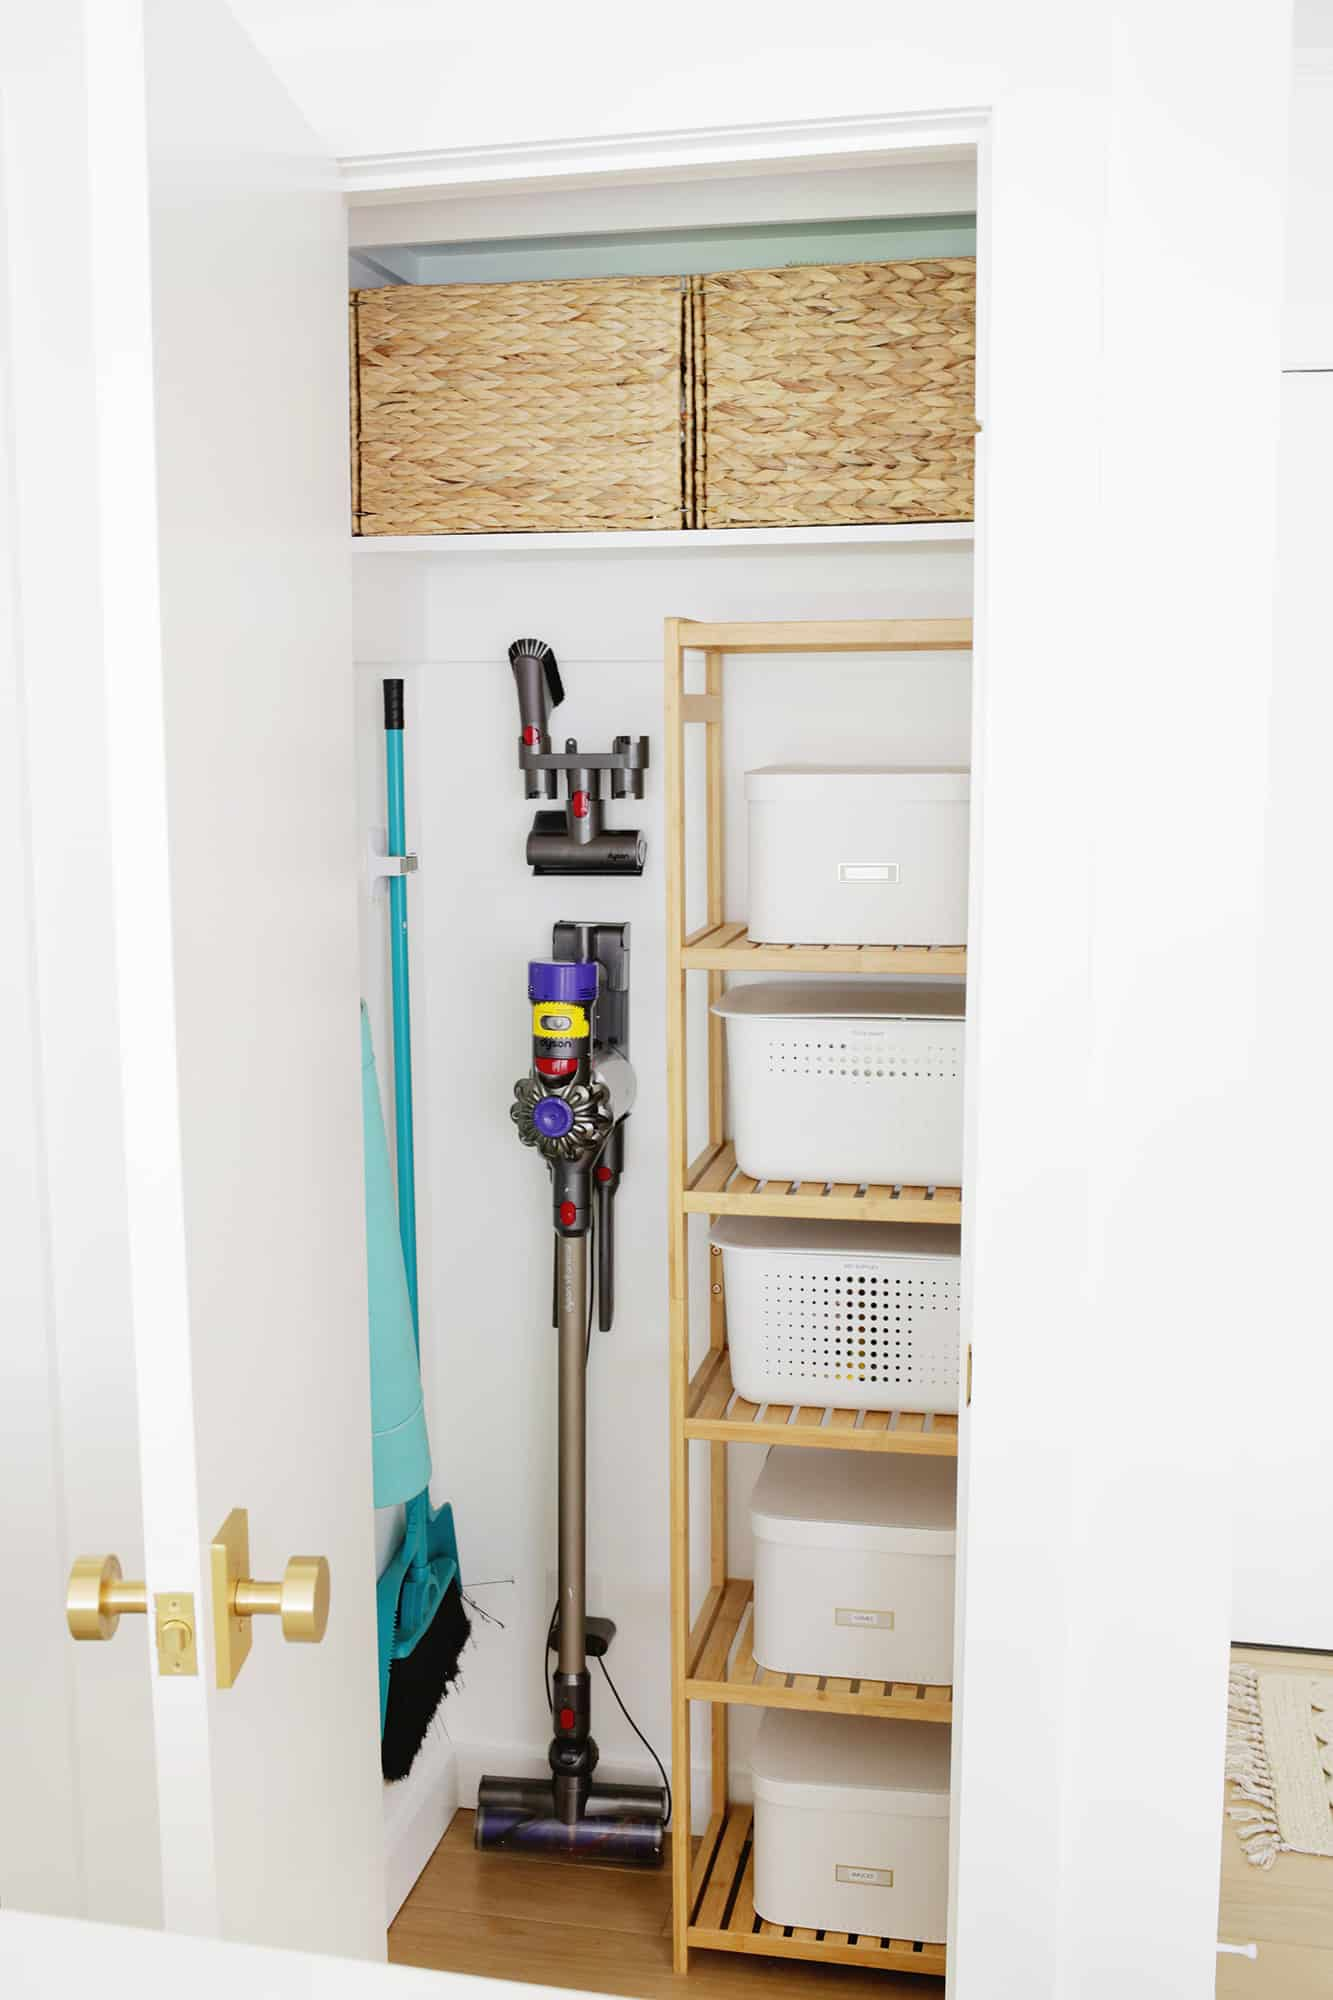 Organized closet with hanging cleaning items and baskets